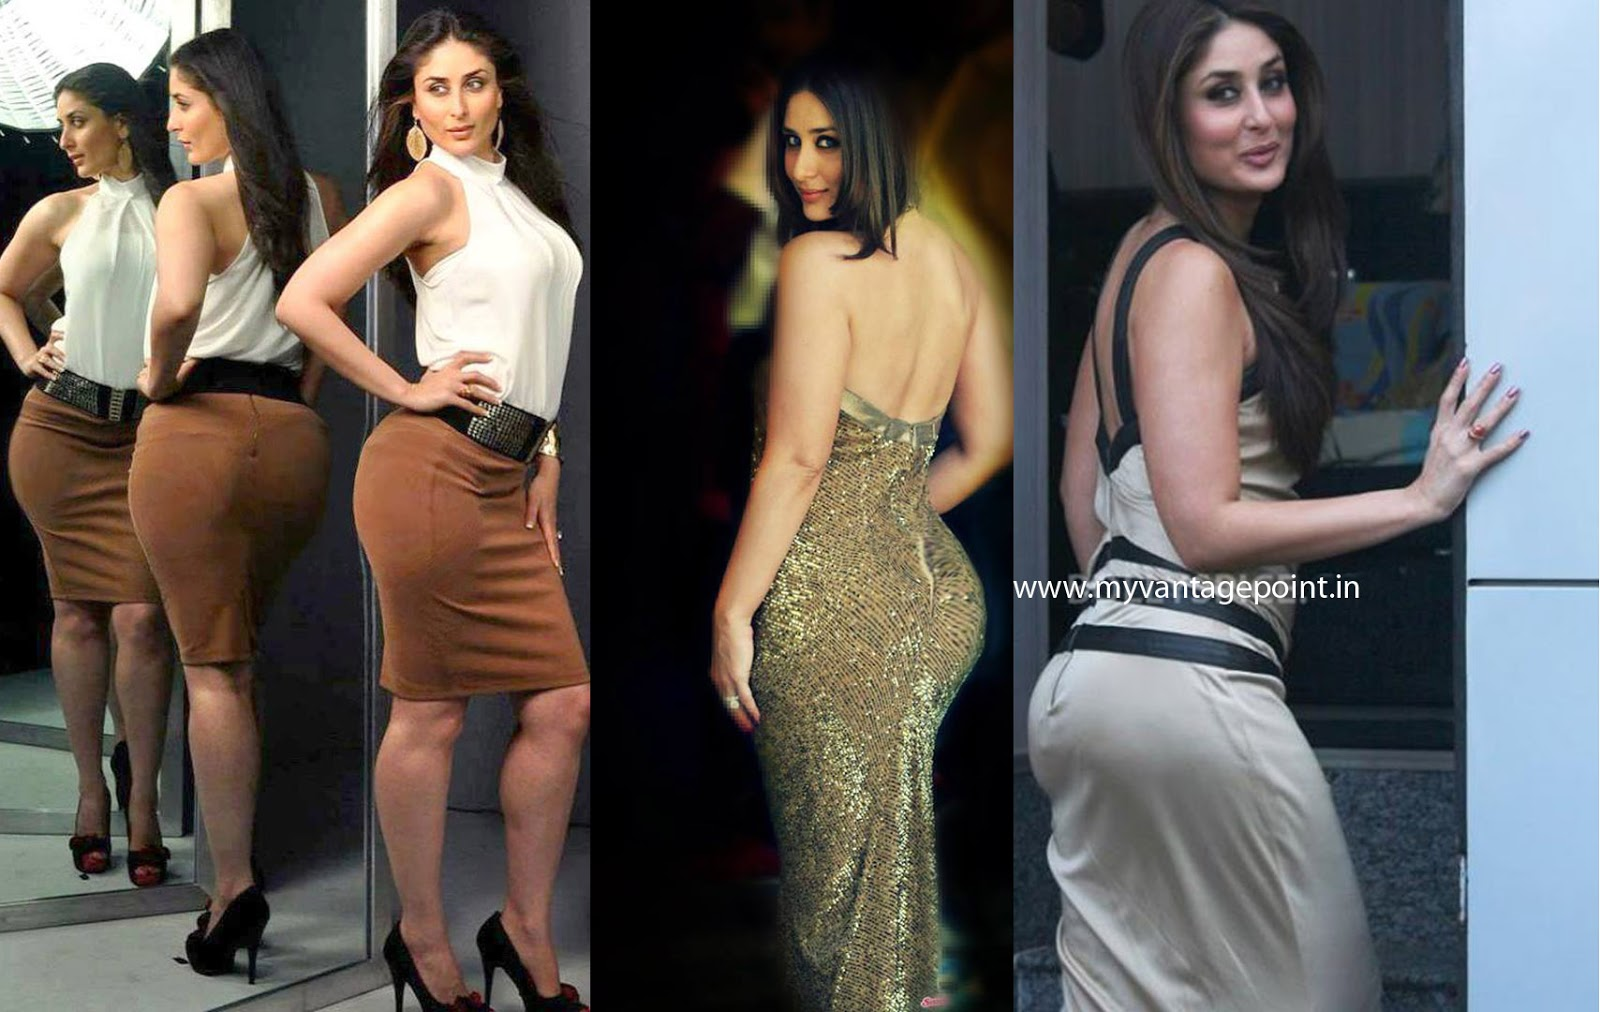 Kareena Kapoor Khan hot, Kareena Kapoor Khan sexy, Kareena Kapoor Khan HD wallpaper, Kareena Kapoor Khan Spicy Photos, Kareena Kapoor Khan backless, Kareena Kapoor Khan sexy back, Kareena Kapoor Khan backshow, Kareena Kapoor Khan thunder thighs, Kareena Kapoor Khan in tight dress, Kareena Kapoor Khan in short dress, Kareena Kapoor Khan best hot HD wallpaper